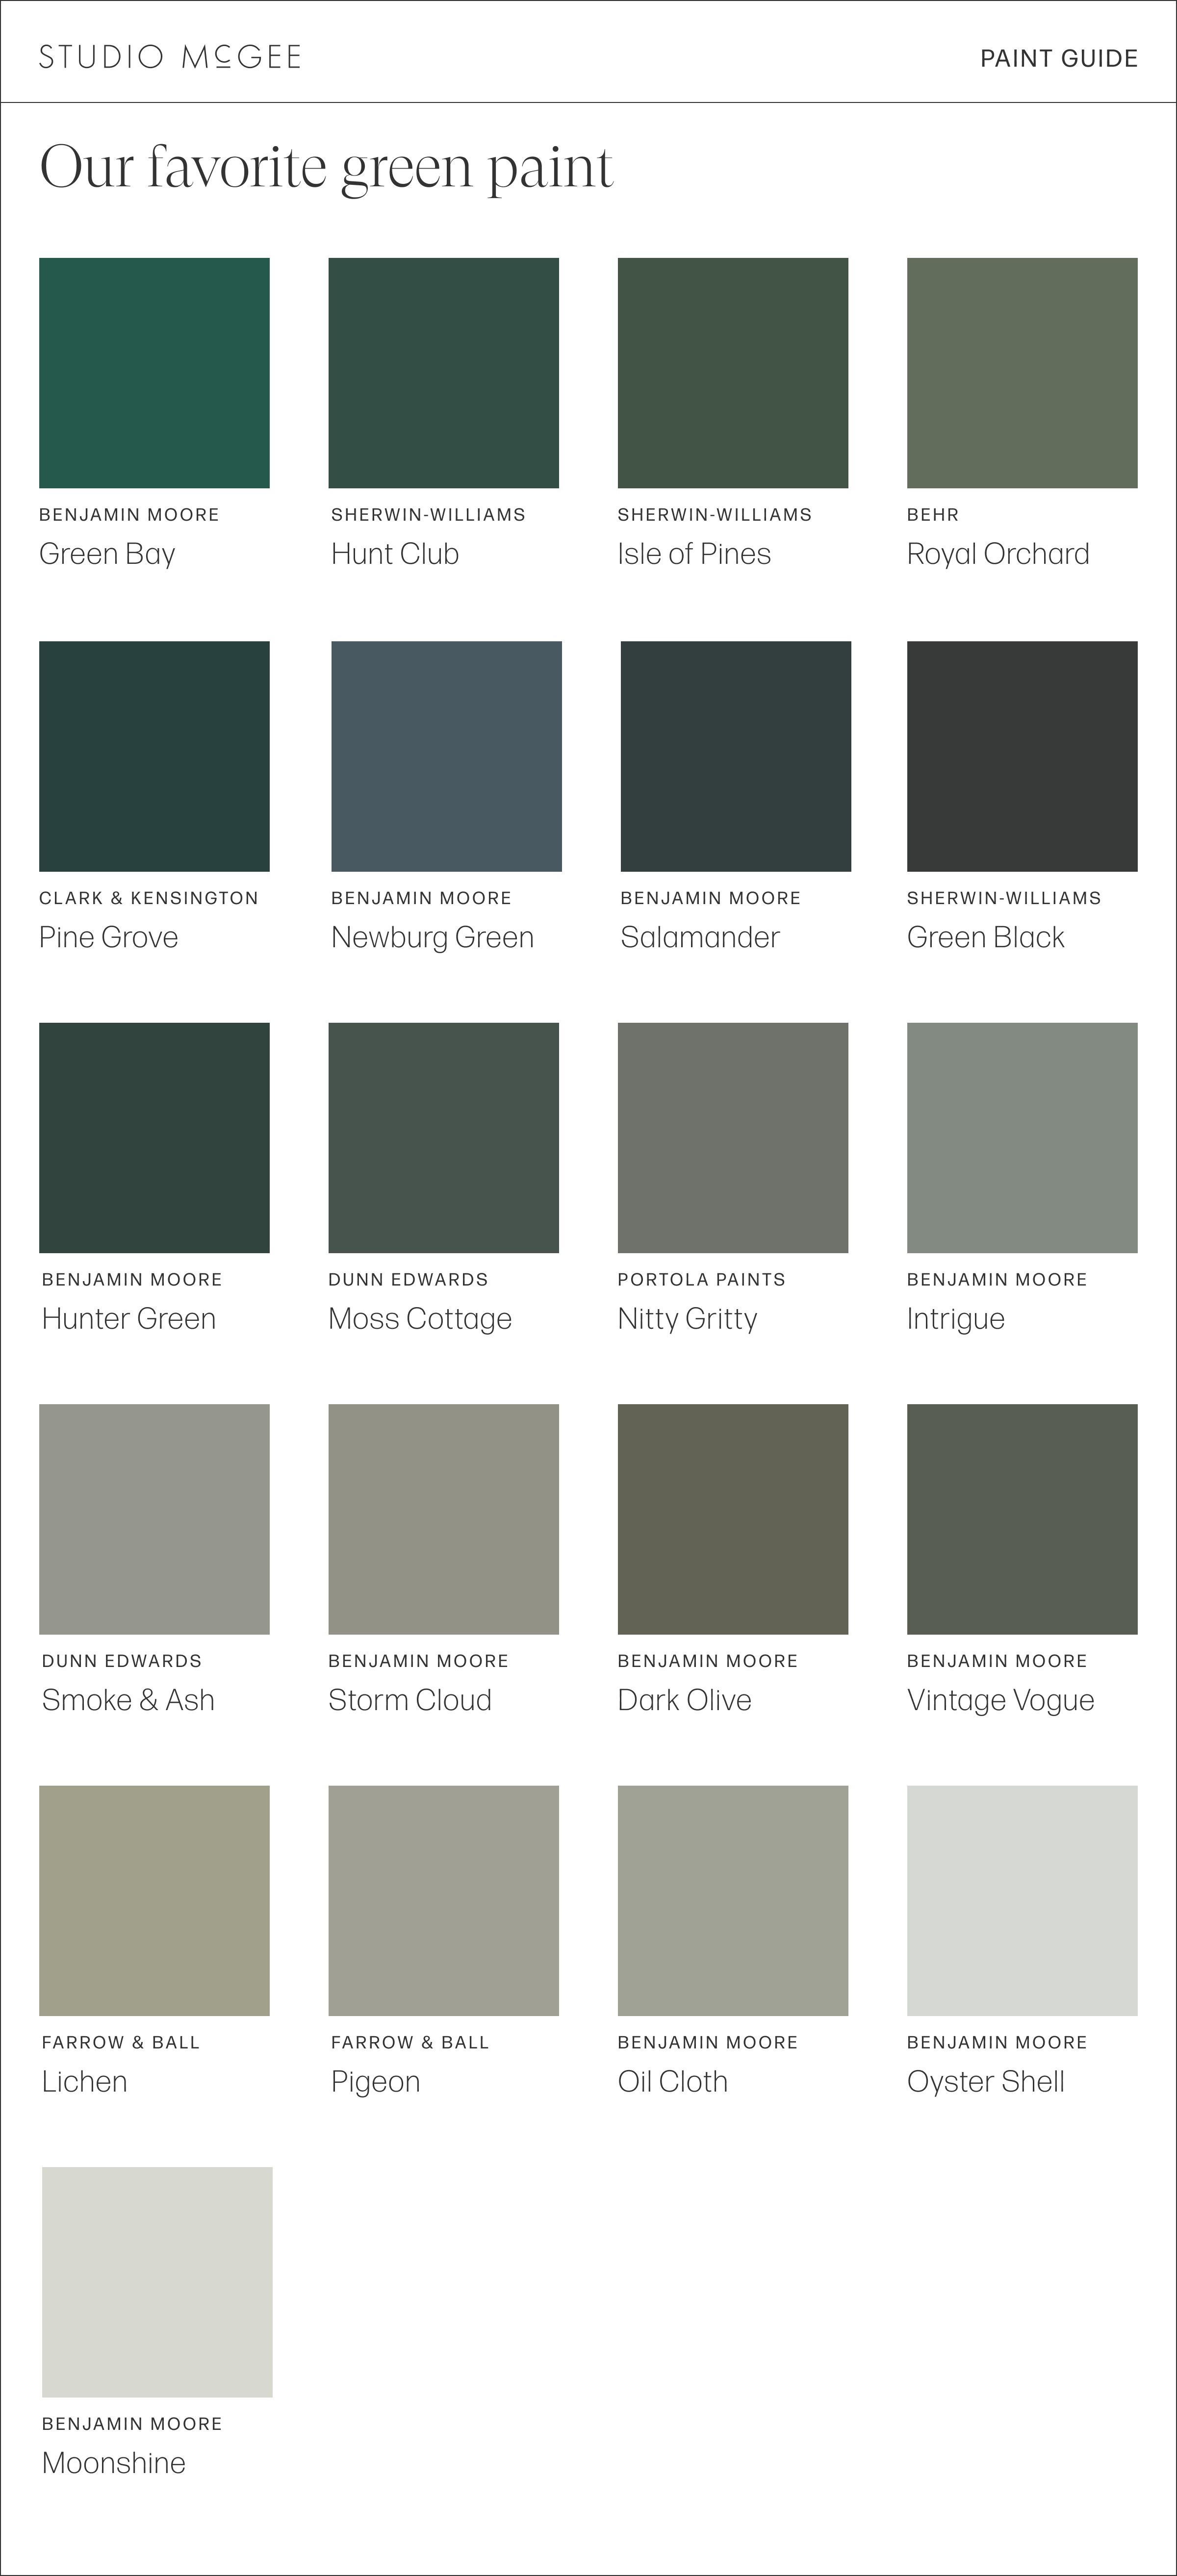 Our Favorite Green Paint Colors Studio Mcgee